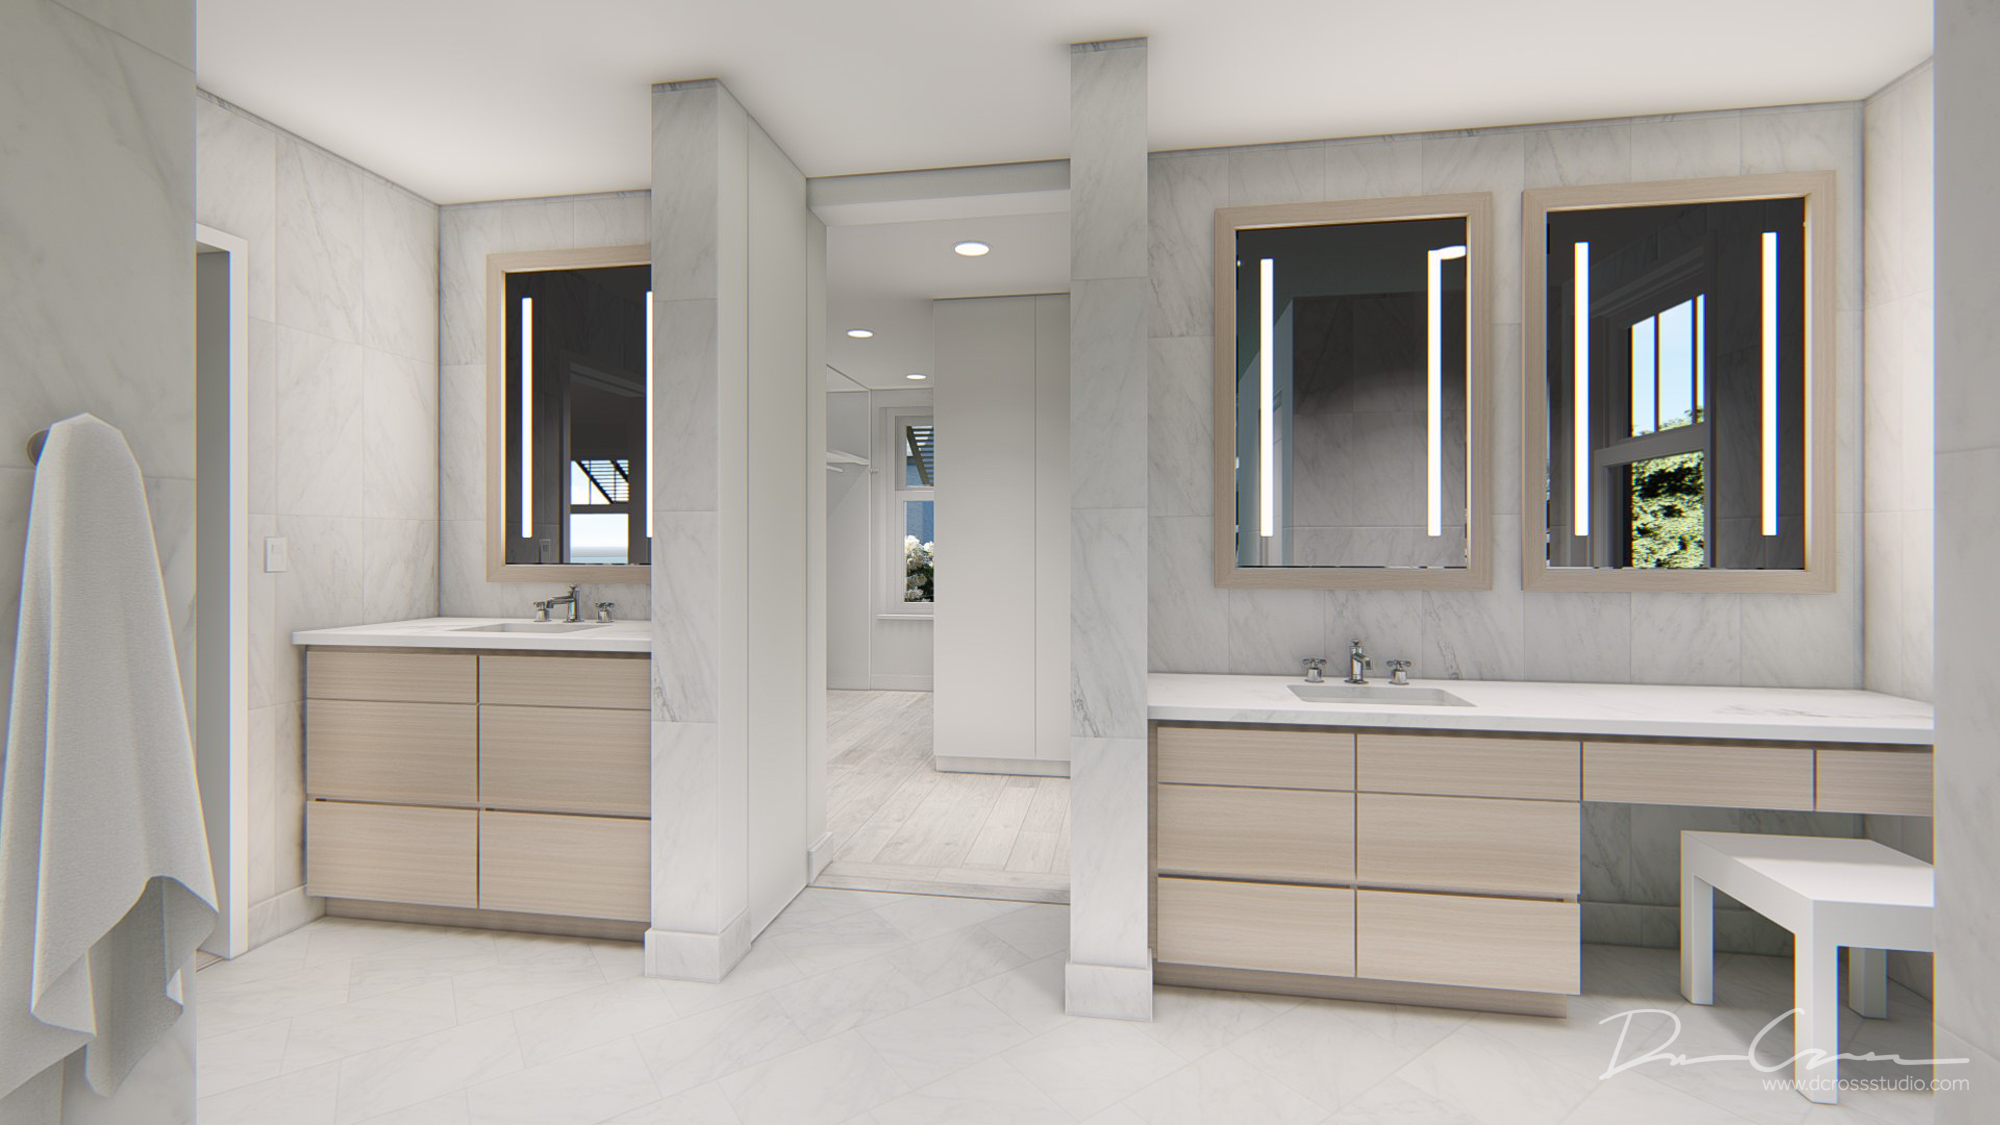 Master Bathroom - Vanity View.jpg